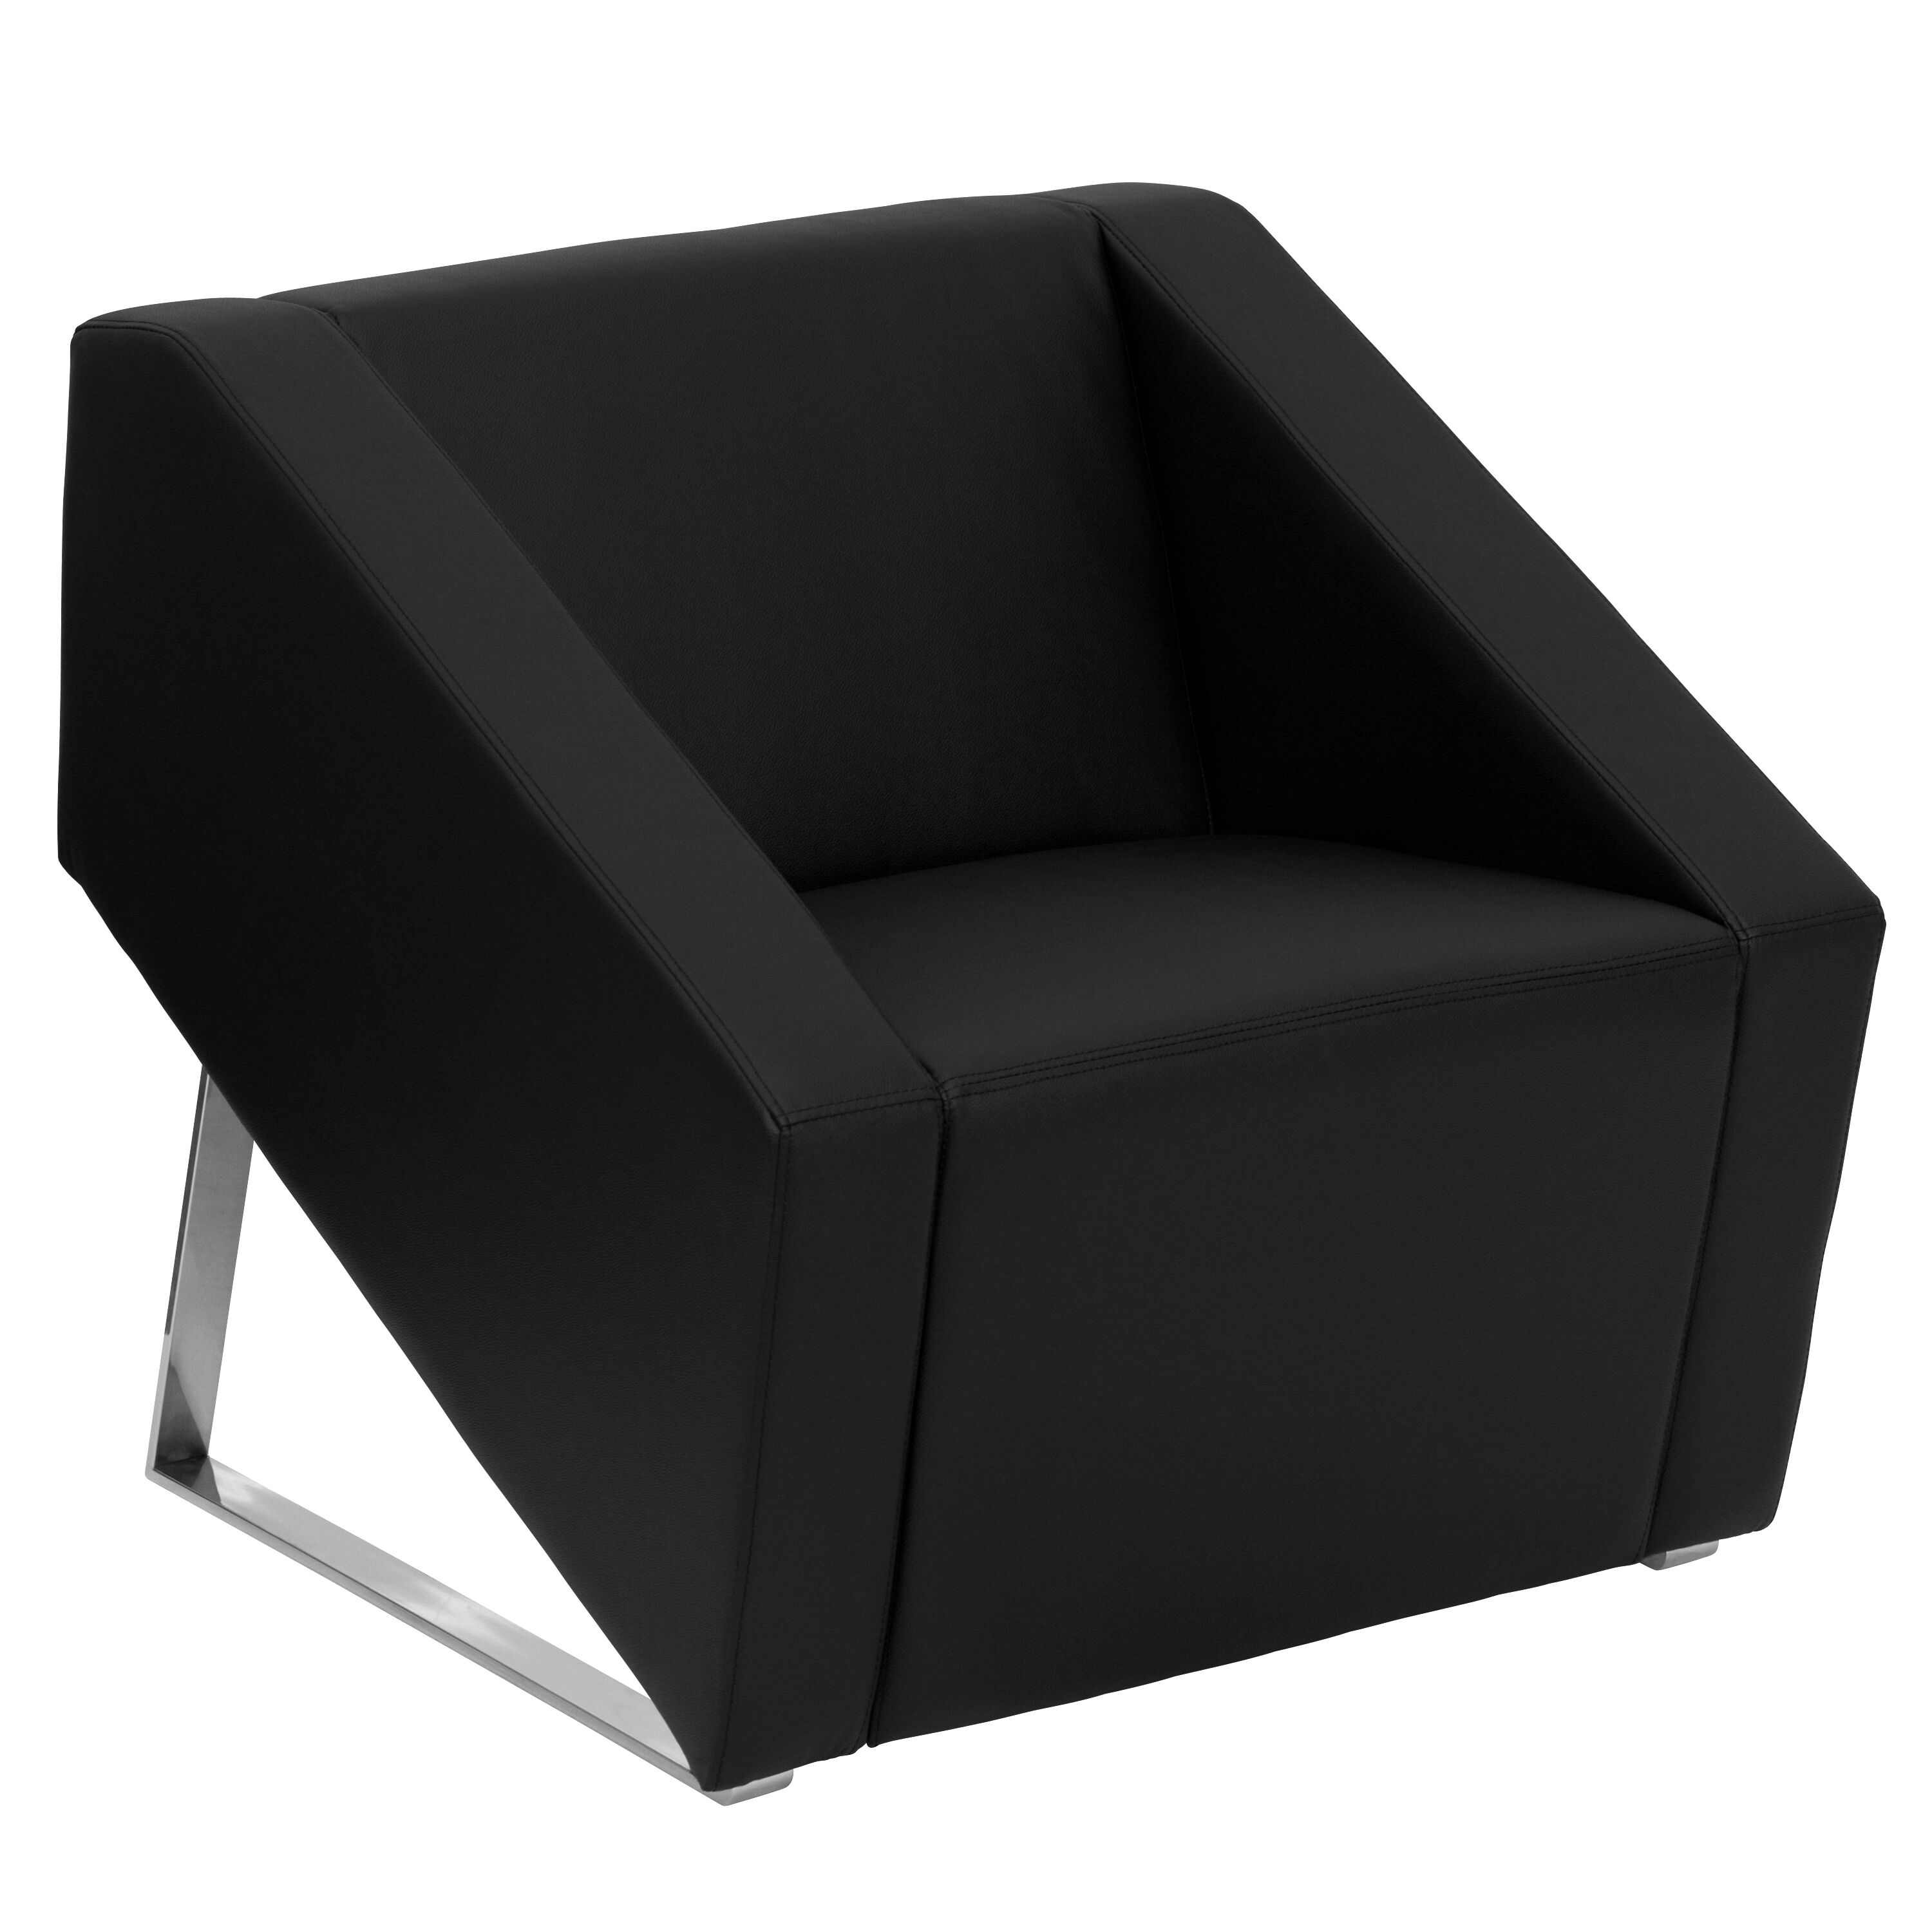 Furniture Chairs Black Our Hercules Smart Series Black Leather Lounge Chair Is On